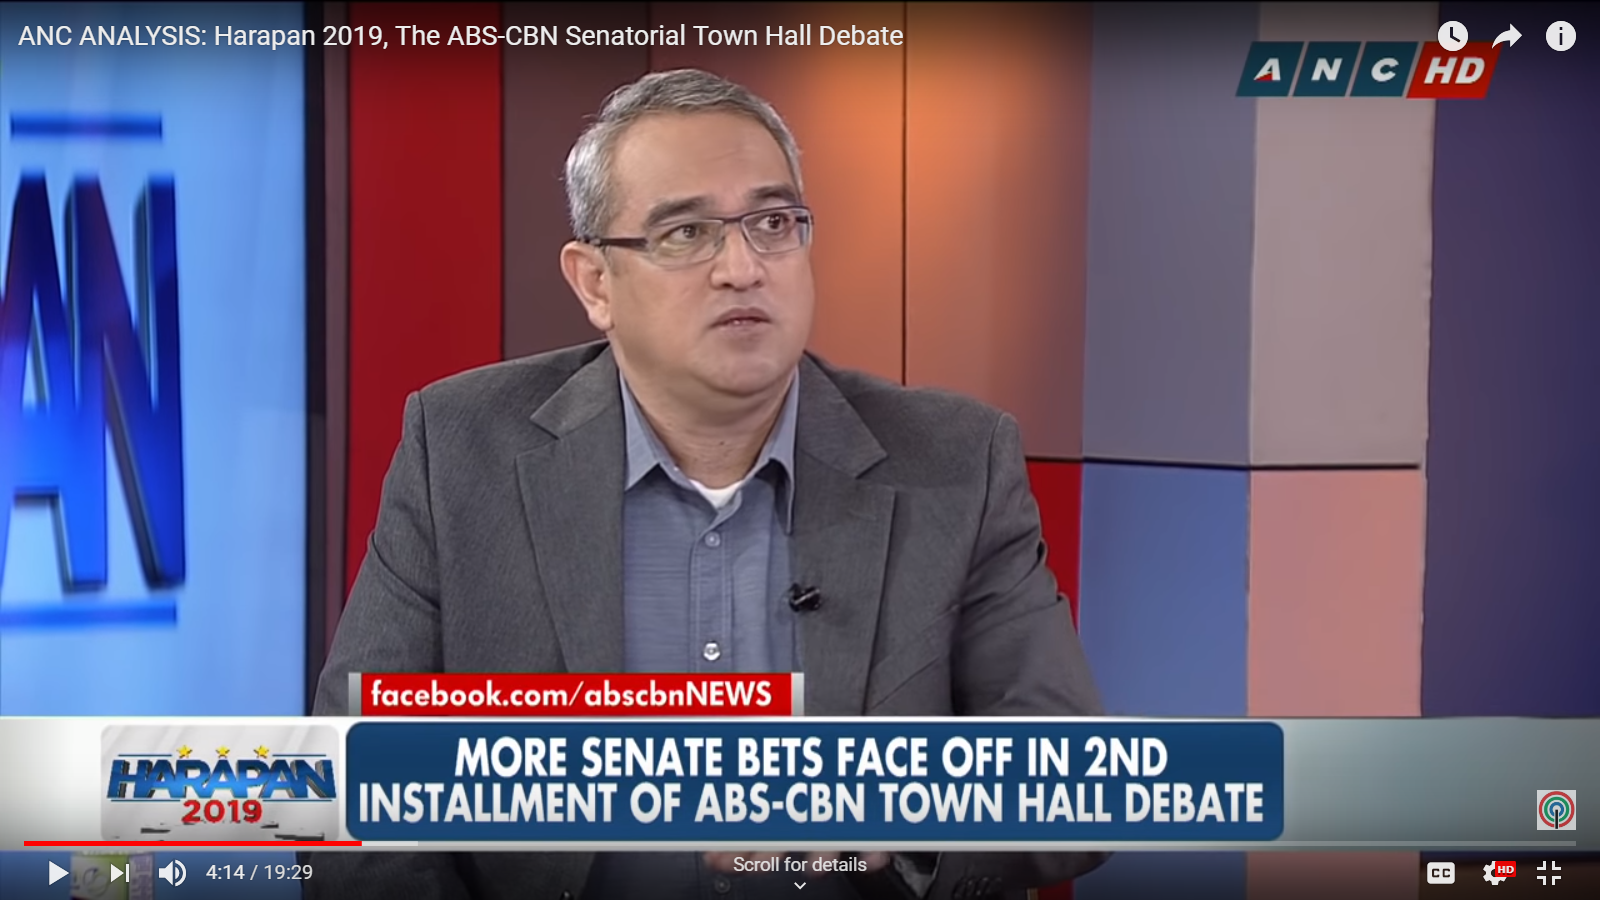 Post-debate analysis of ANC's #Harapan2019